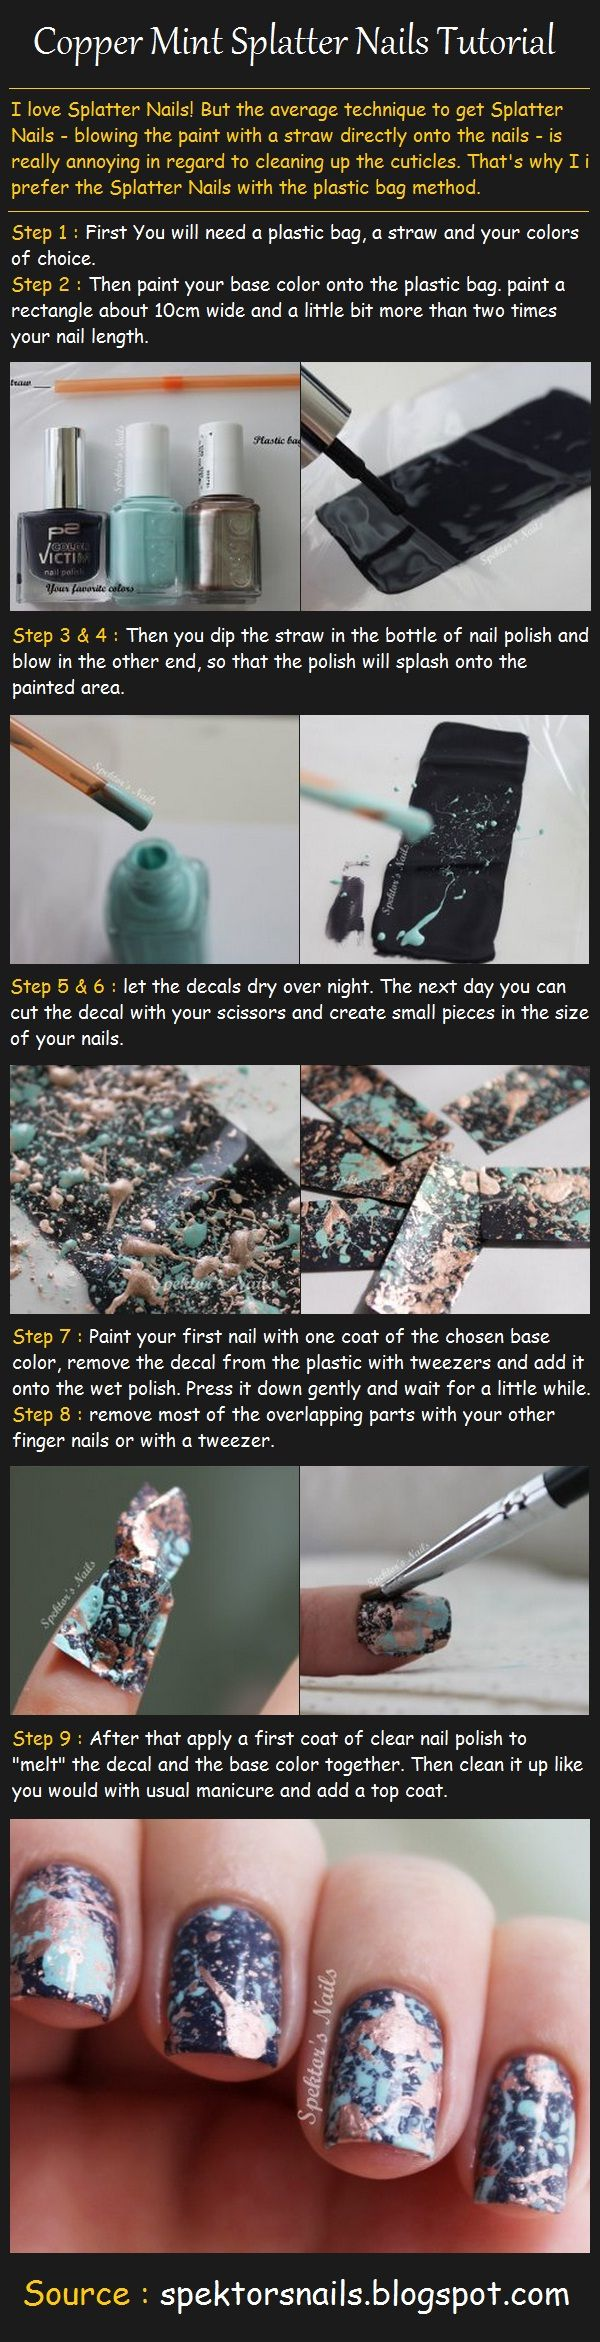 Copper Mint Splatter Nails Tutorial